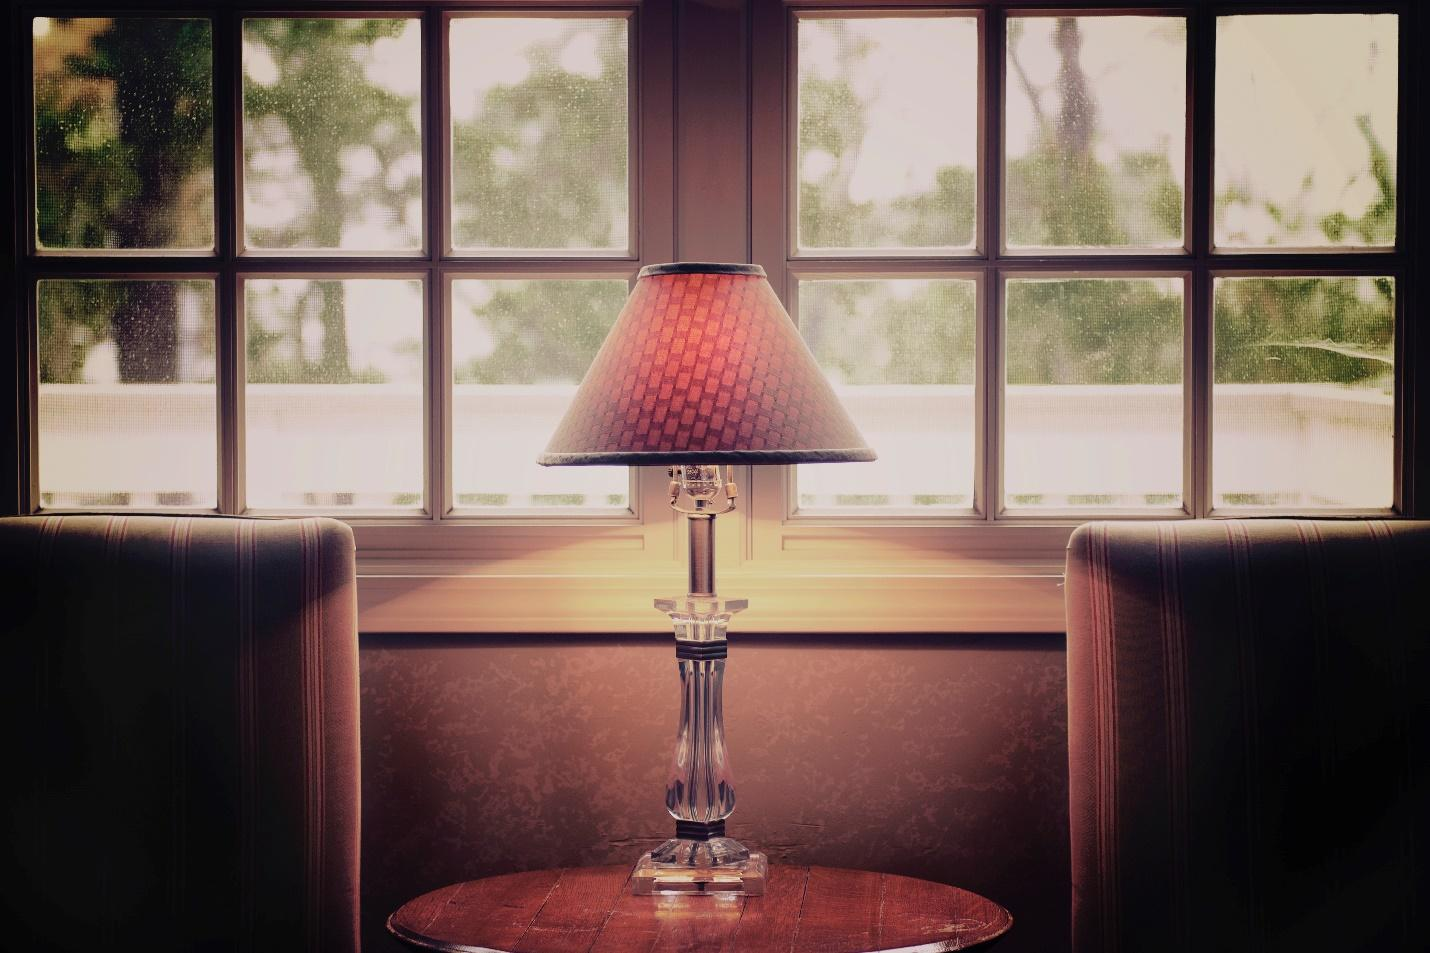 A table lamp in front of a window.